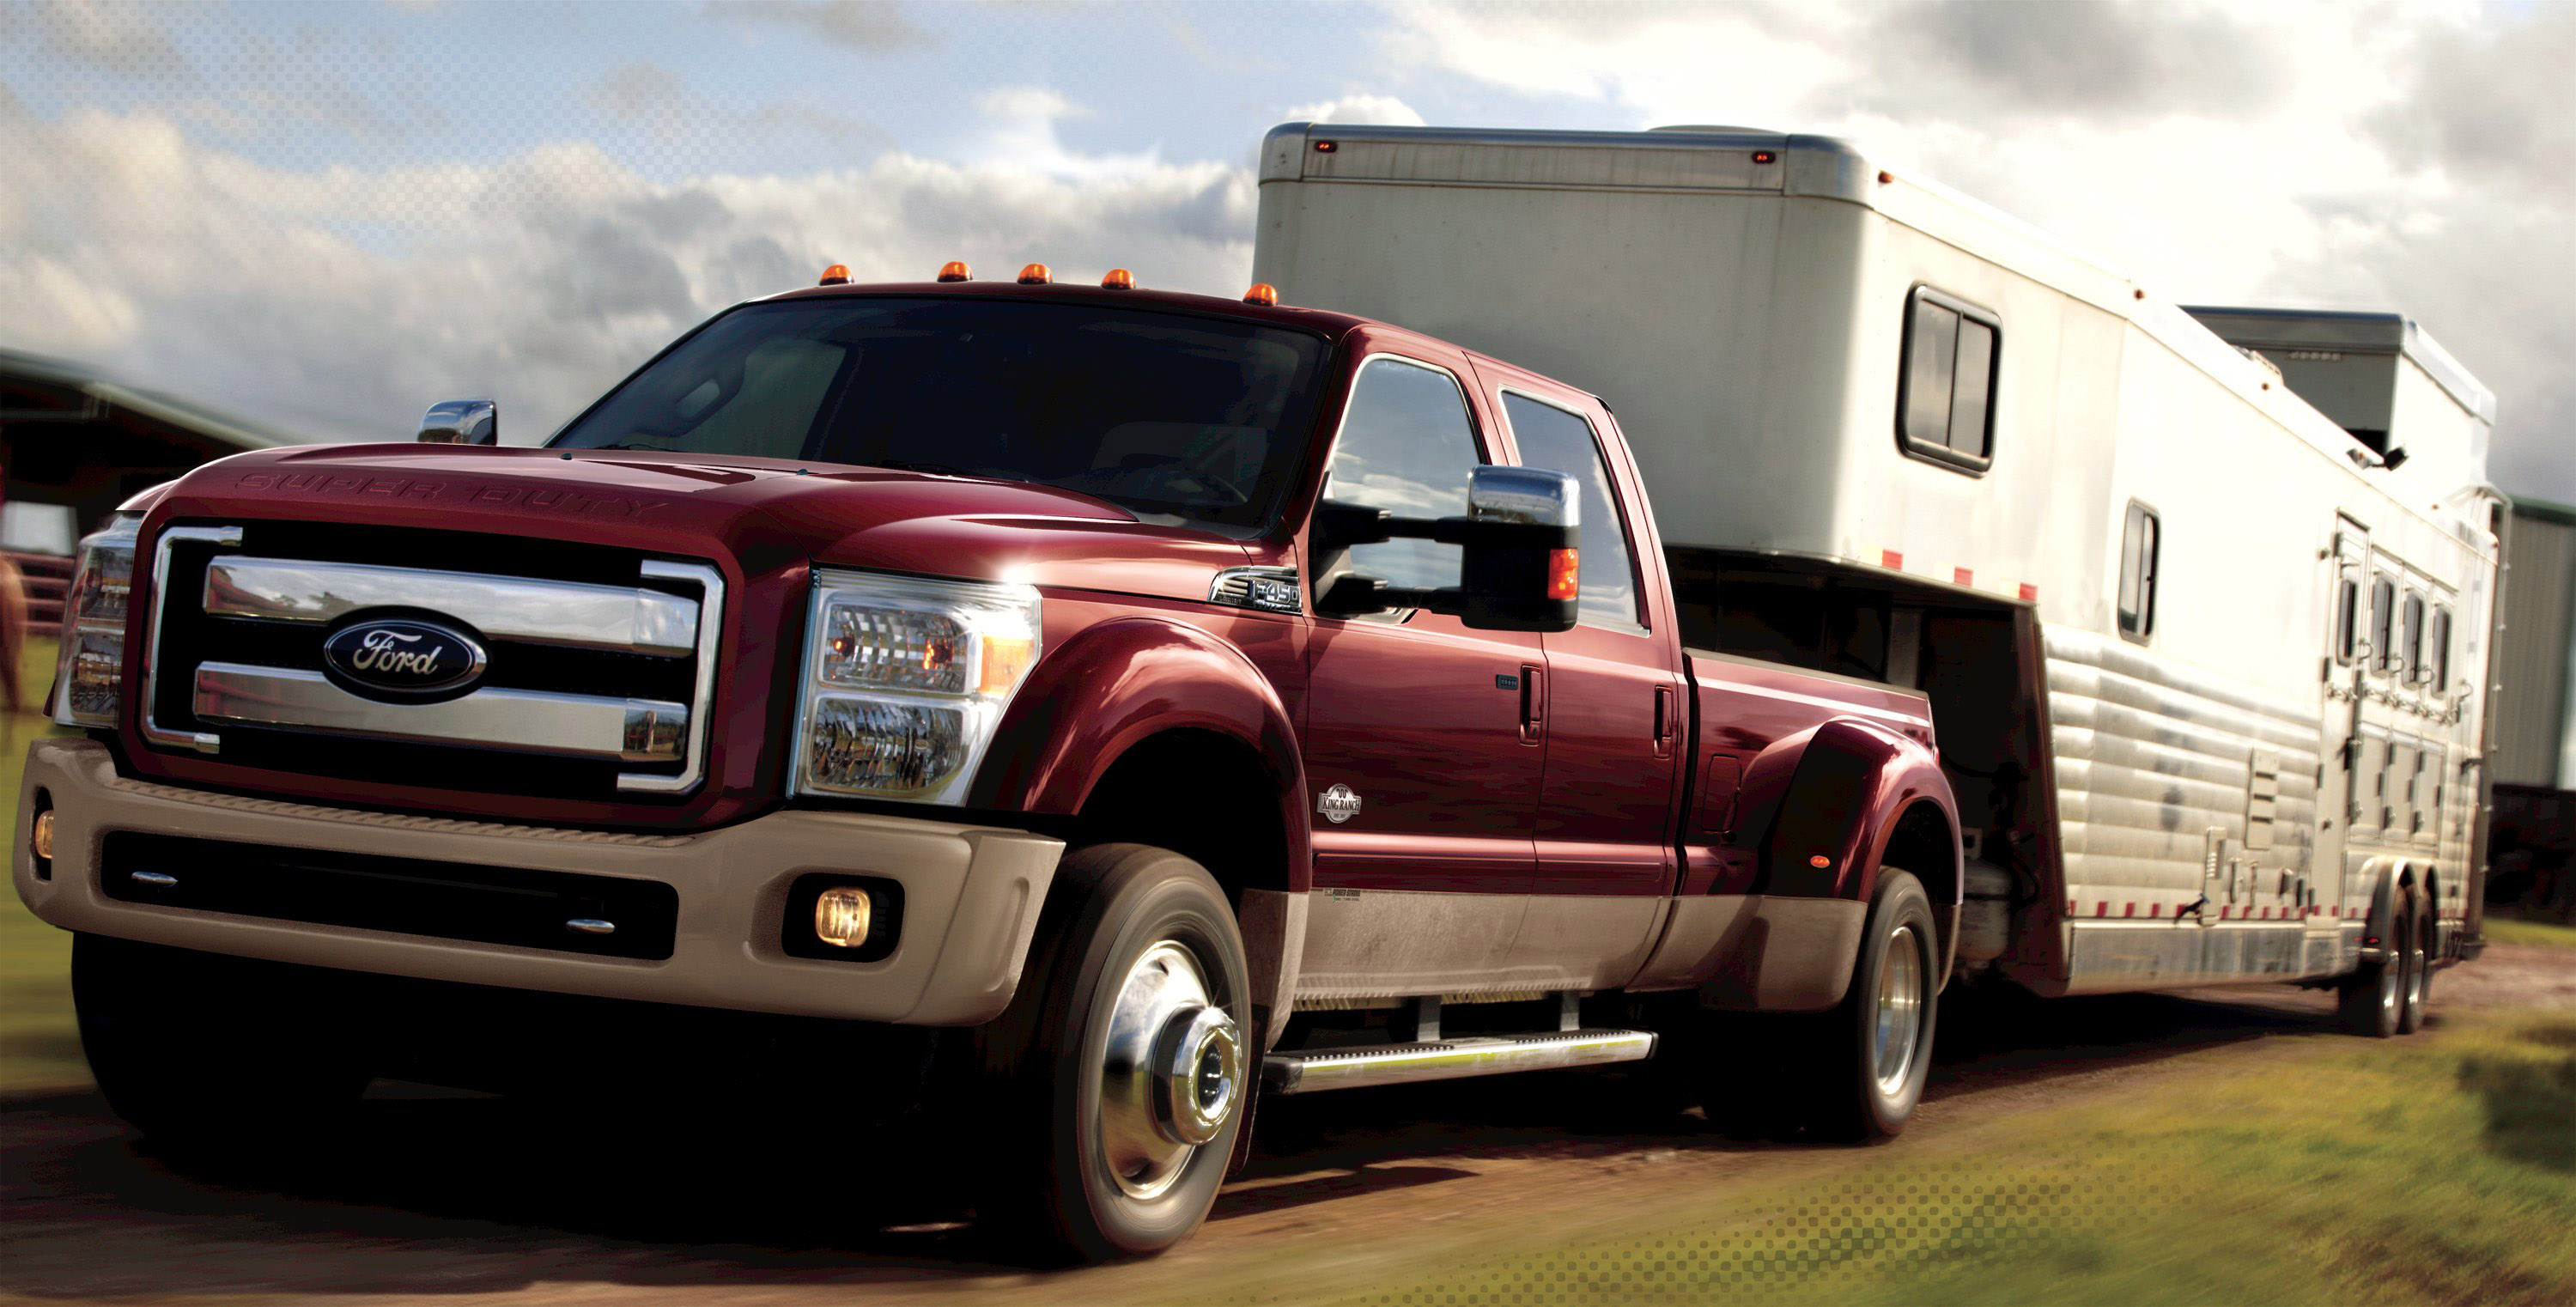 2010 Ford F-450 Super Duty #5